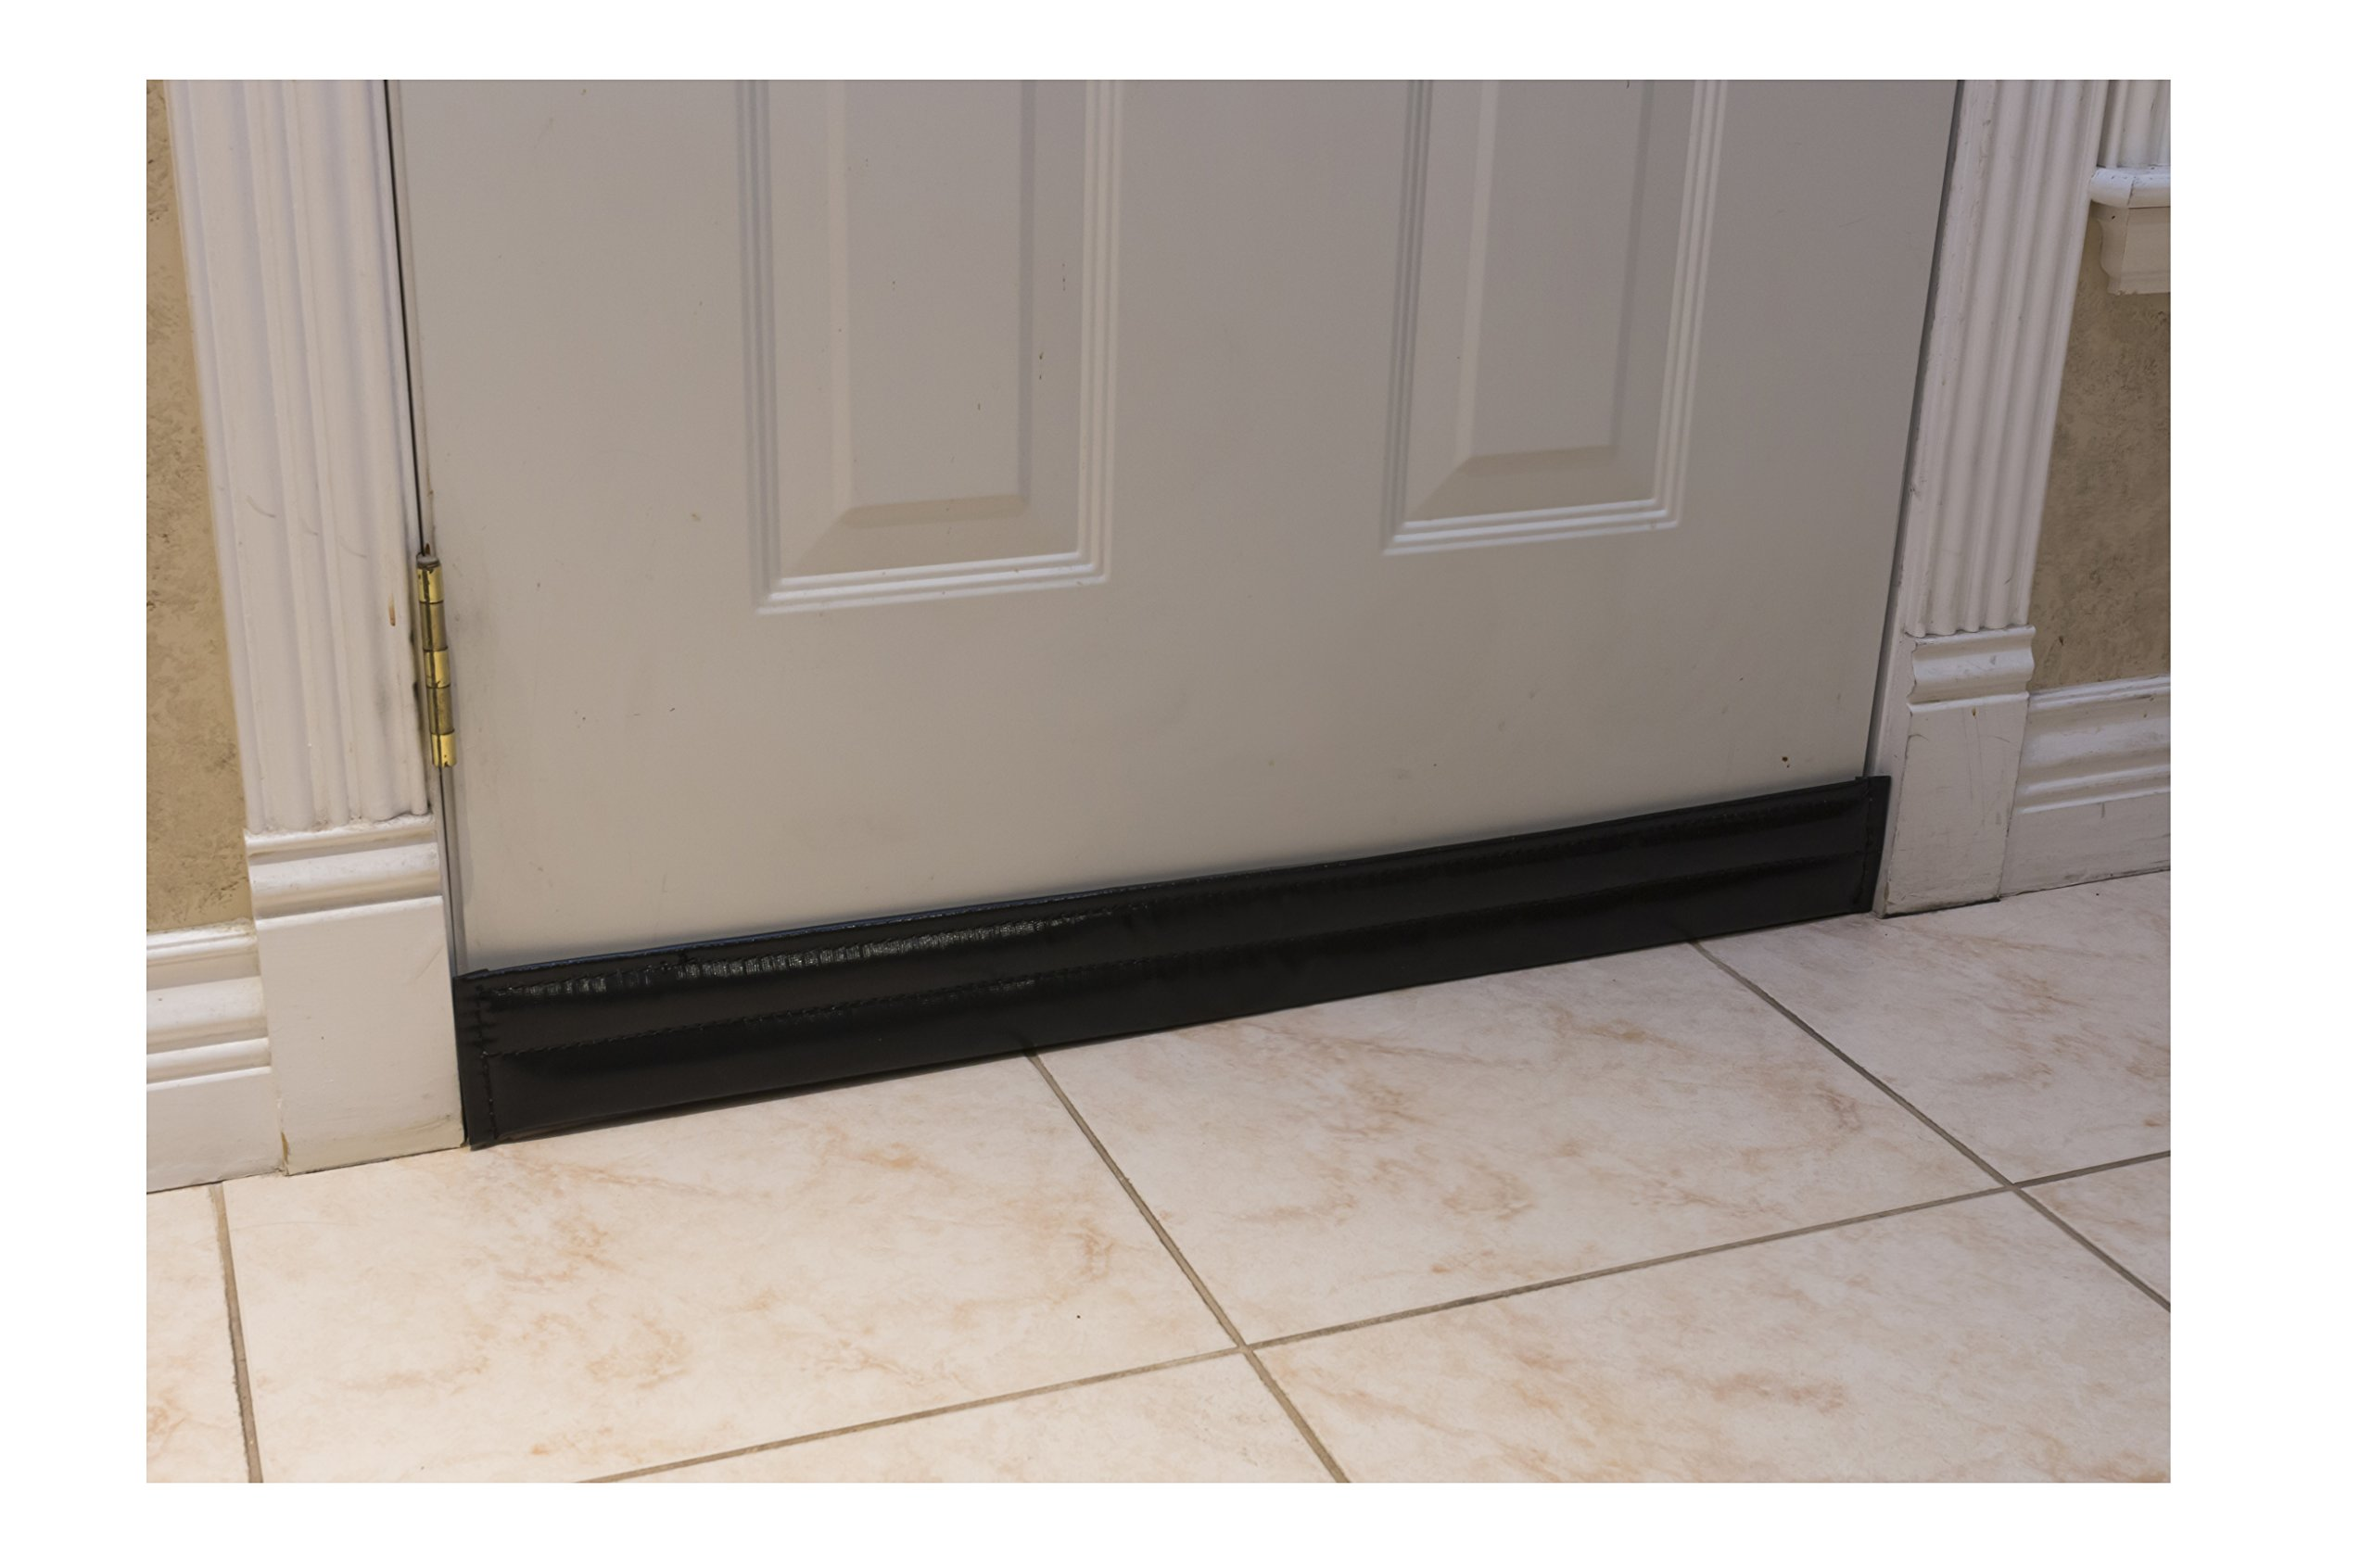 Soundproof Door Pad. Stop Sound, drafts and Reduce Heat Loss Through Gaps Along Bottom, top or Sides of Door. for Doors up to 36 inches Wide and Gaps up to 2.5 inches.